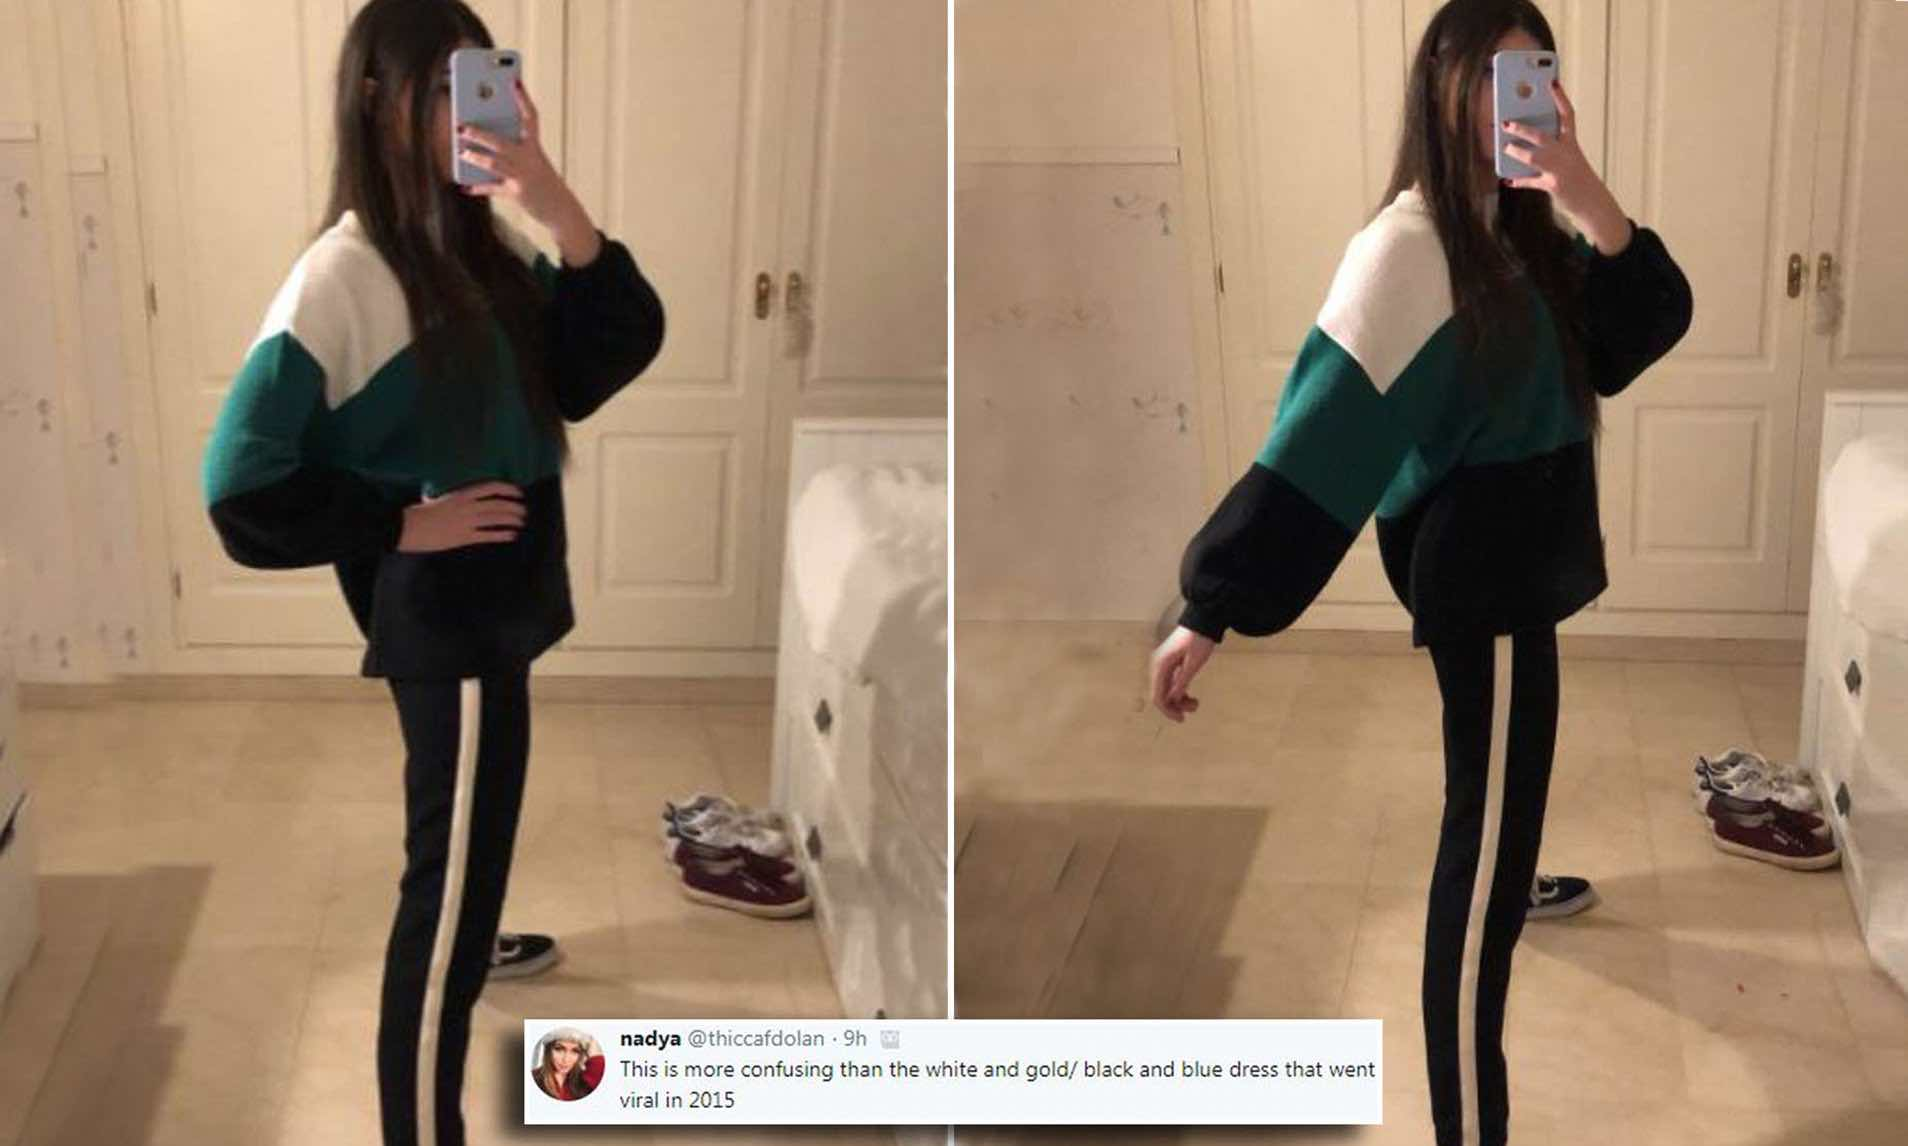 Optical Illusion Goes Viral, so do YOU see two legs or one?